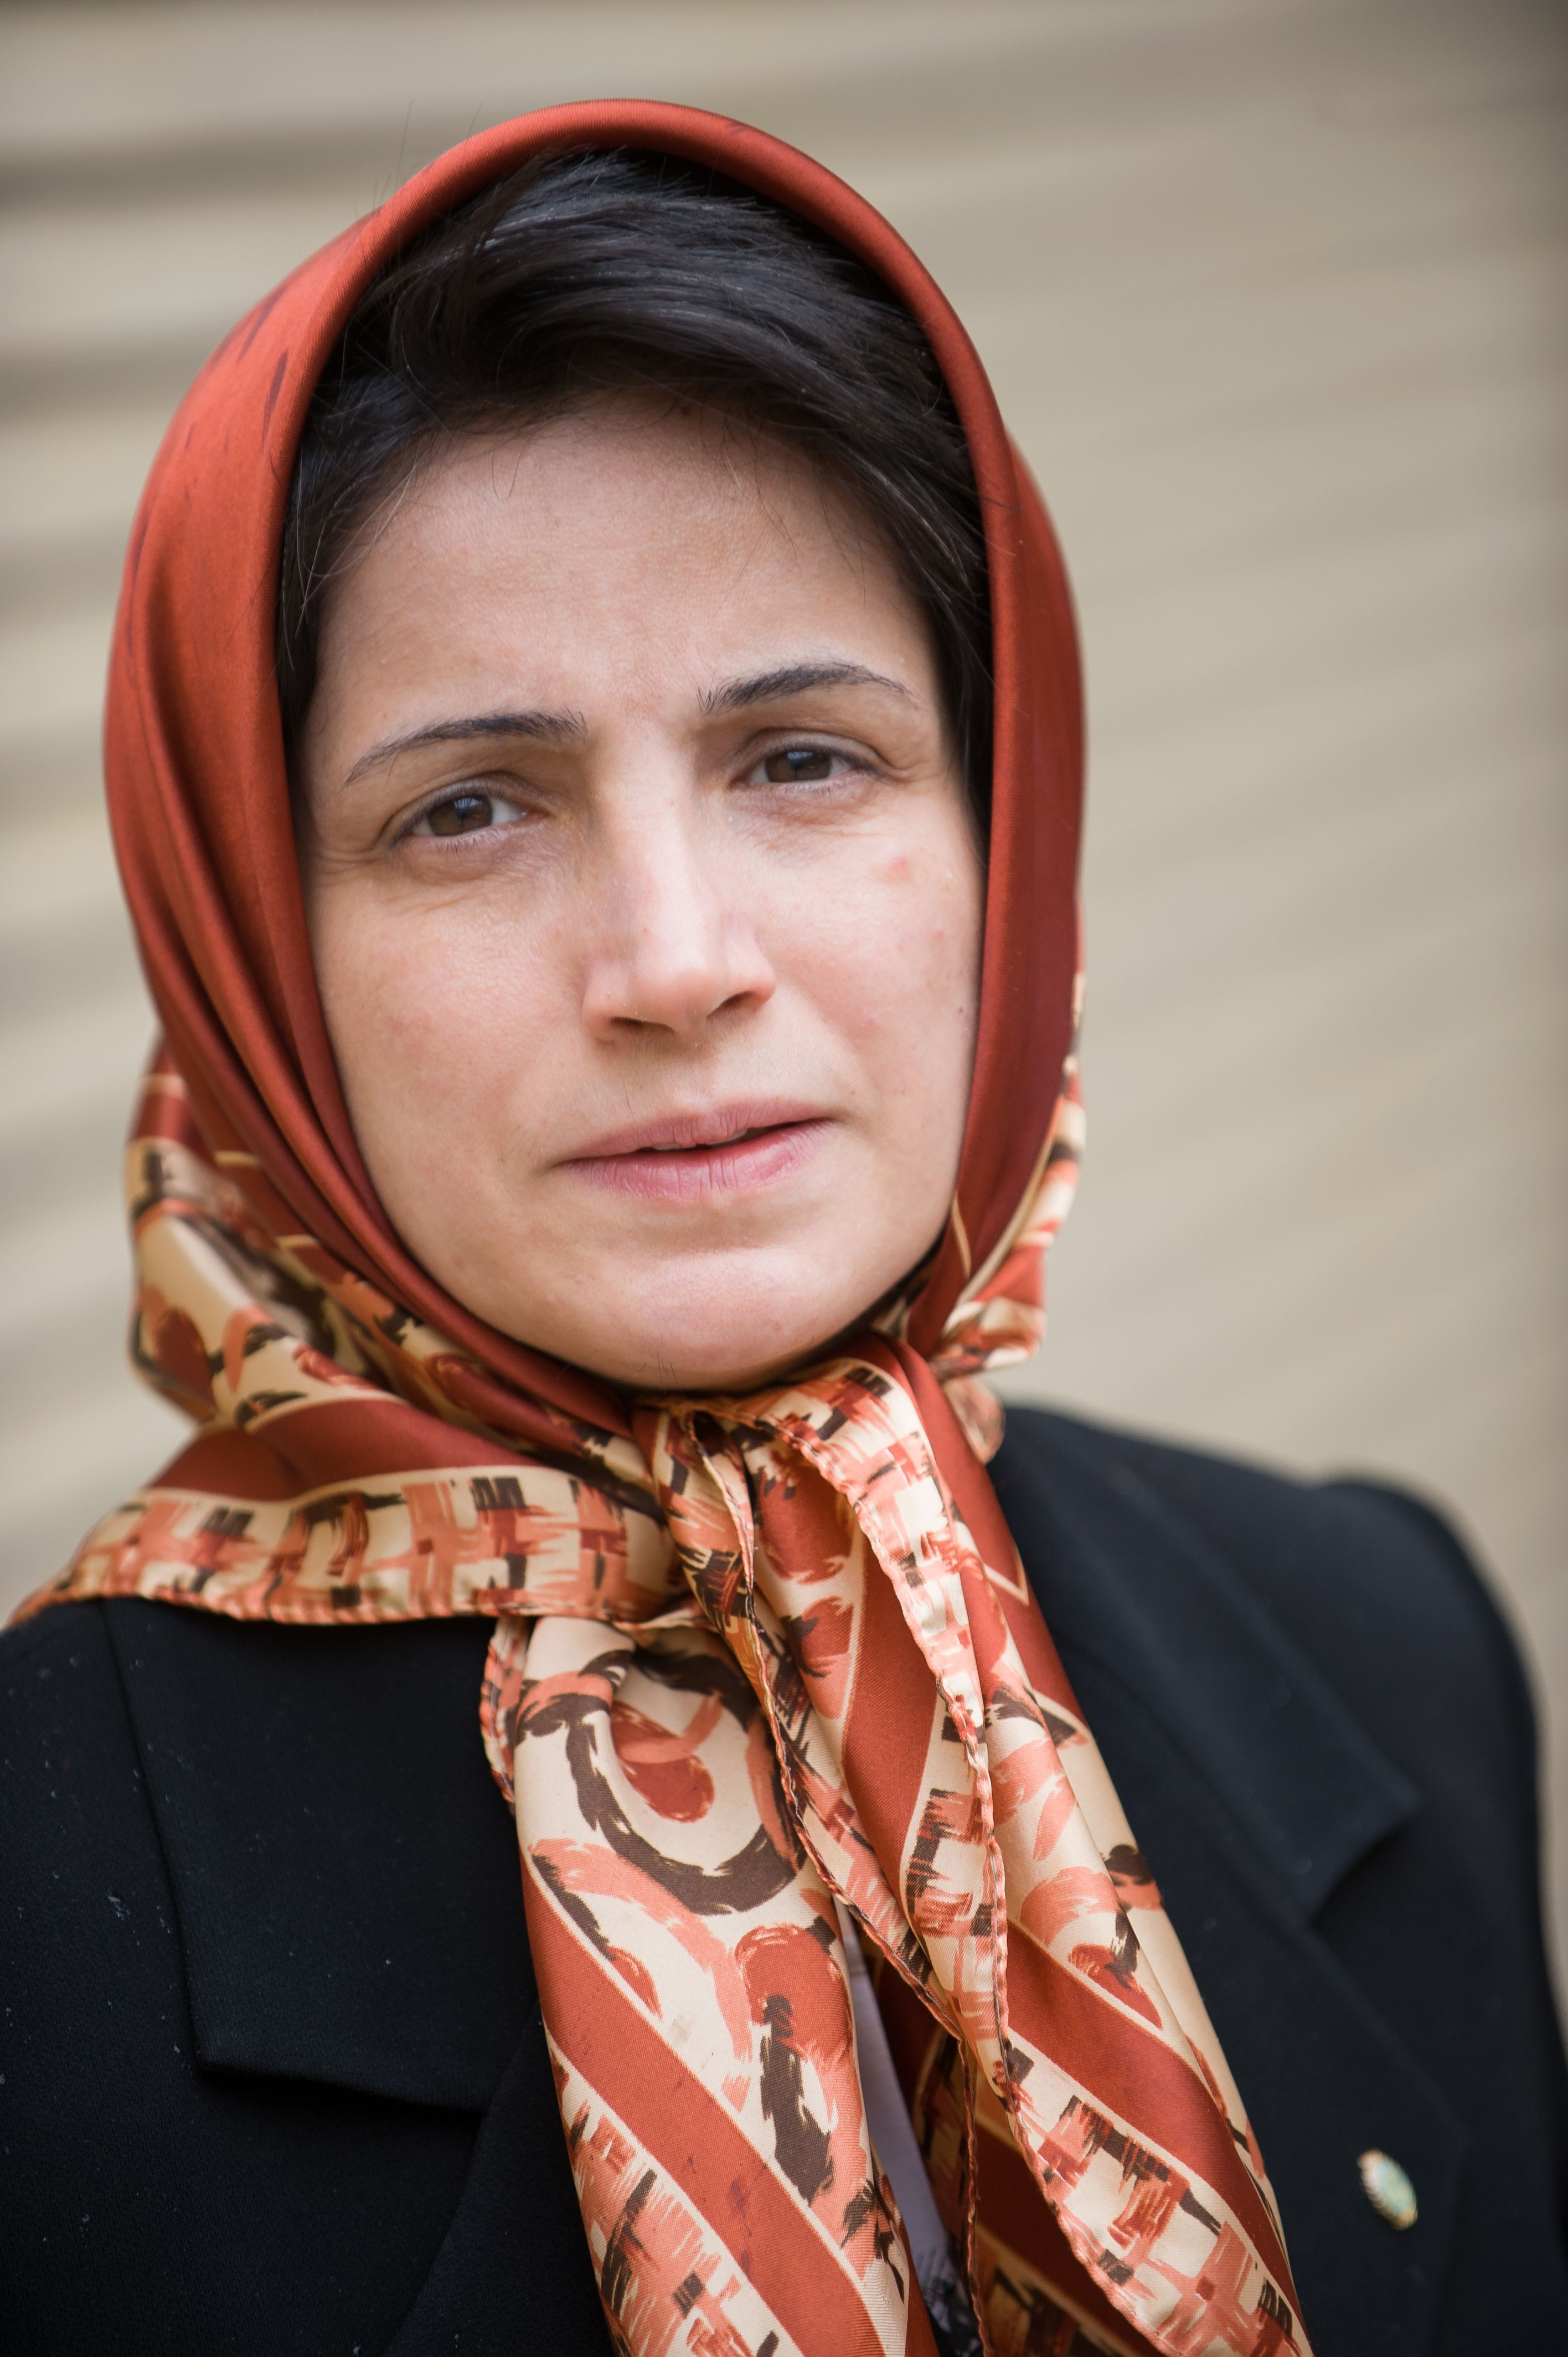 Iranian lawyer Nasrin Sotoudeh is seen in Tehran on November 1, 2008. Sotoudeh was sentenced to 11 years in prison for defending opposition members after the disputed re-election of President Mahmoud Ahmadinejad in 2009. A dozen lawyers defending human rights cases and opposition members are currently imprisoned in Iran, according to Amnesty International, which describes them as prisoners of conscience. AFP PHOTO/ARASH ASHOURINIA === IRAN OUT ===